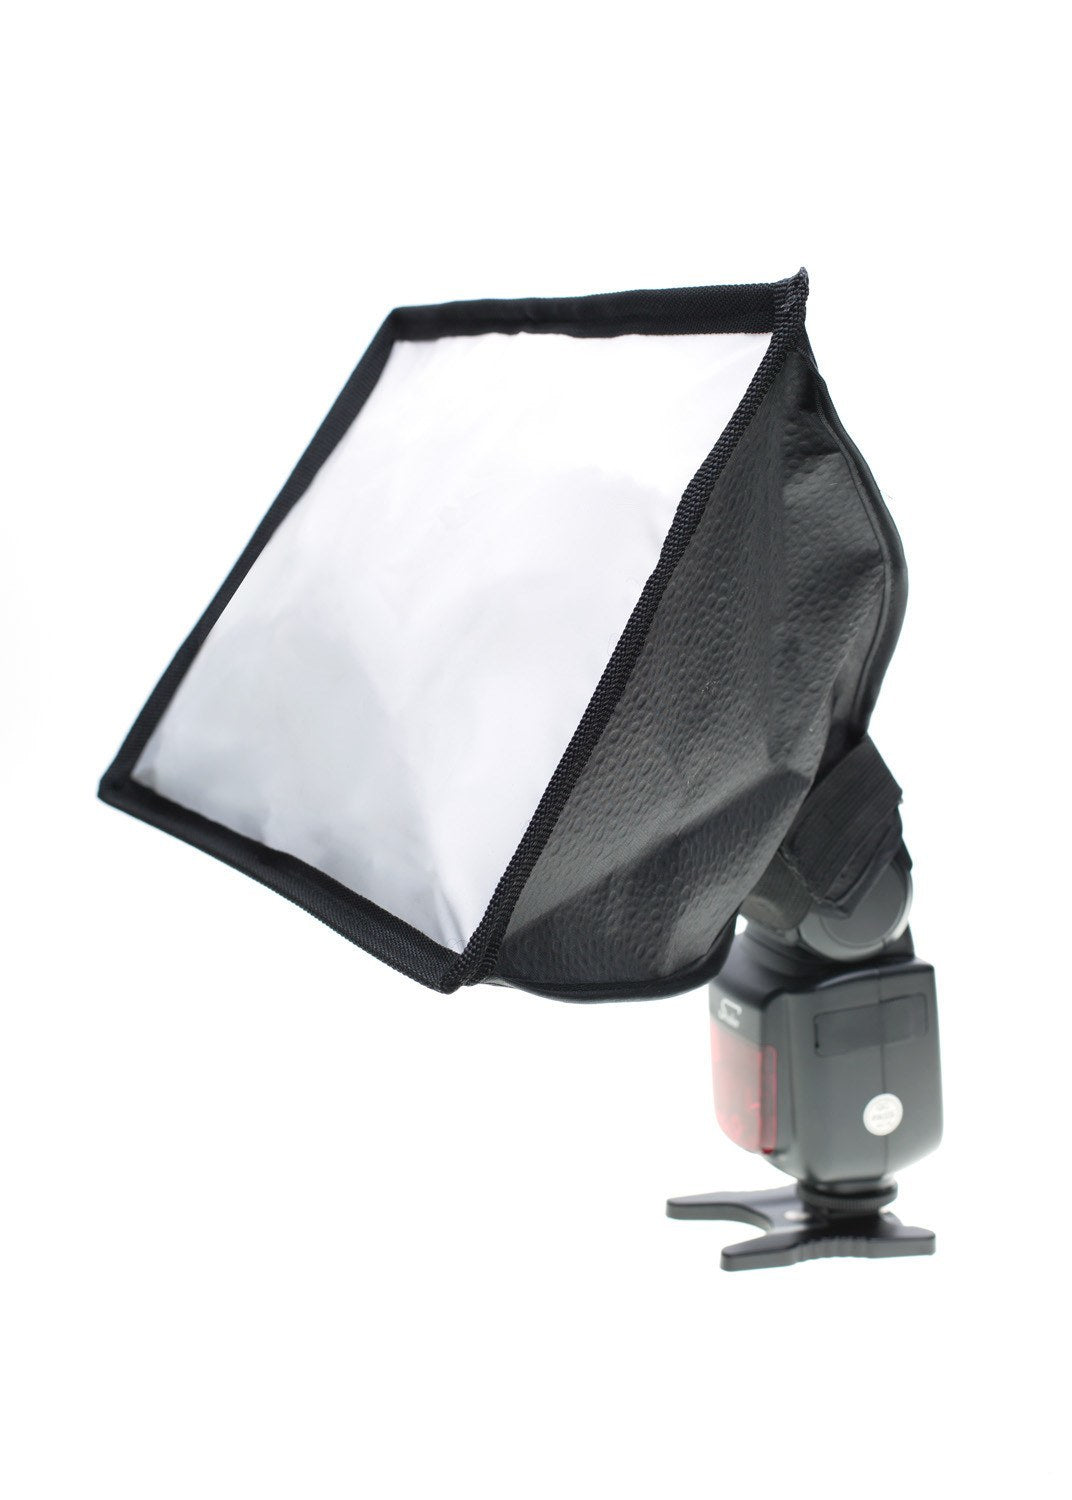 "StudioPRO Rectangle Universal Collapsible Softbox for Speedlite - 8"" x 11"" -  - 1"